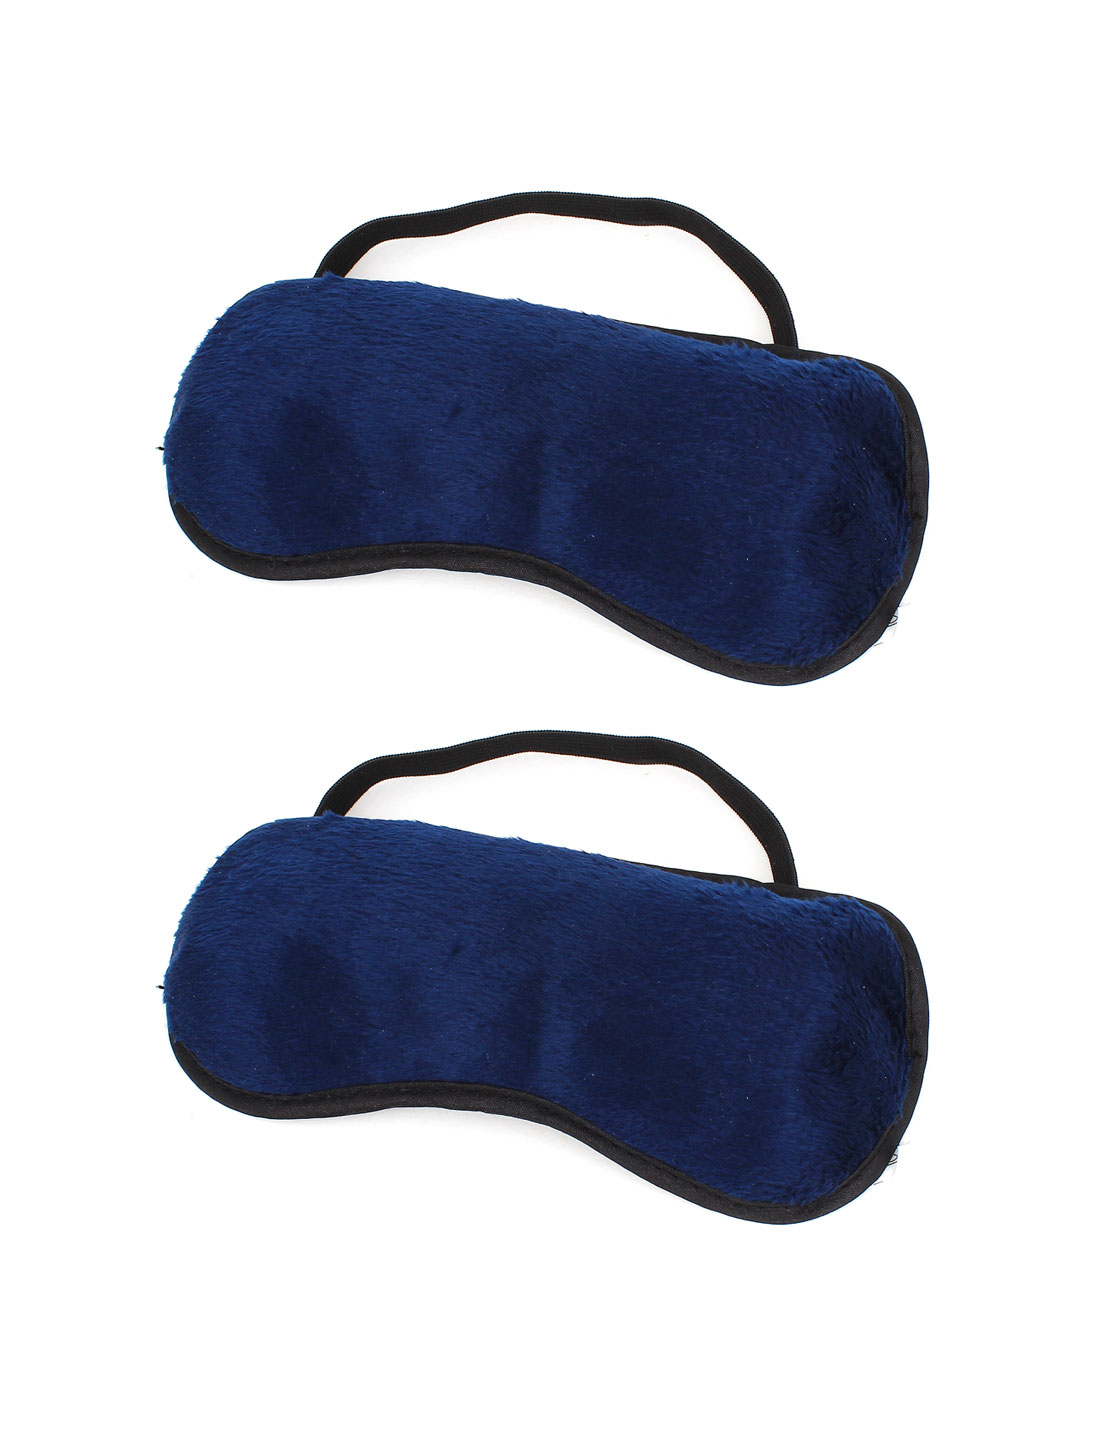 Unisex Travel Elastic Belt Sleep Eyeshade Eye Cover Mask Dark Blue 2pcs